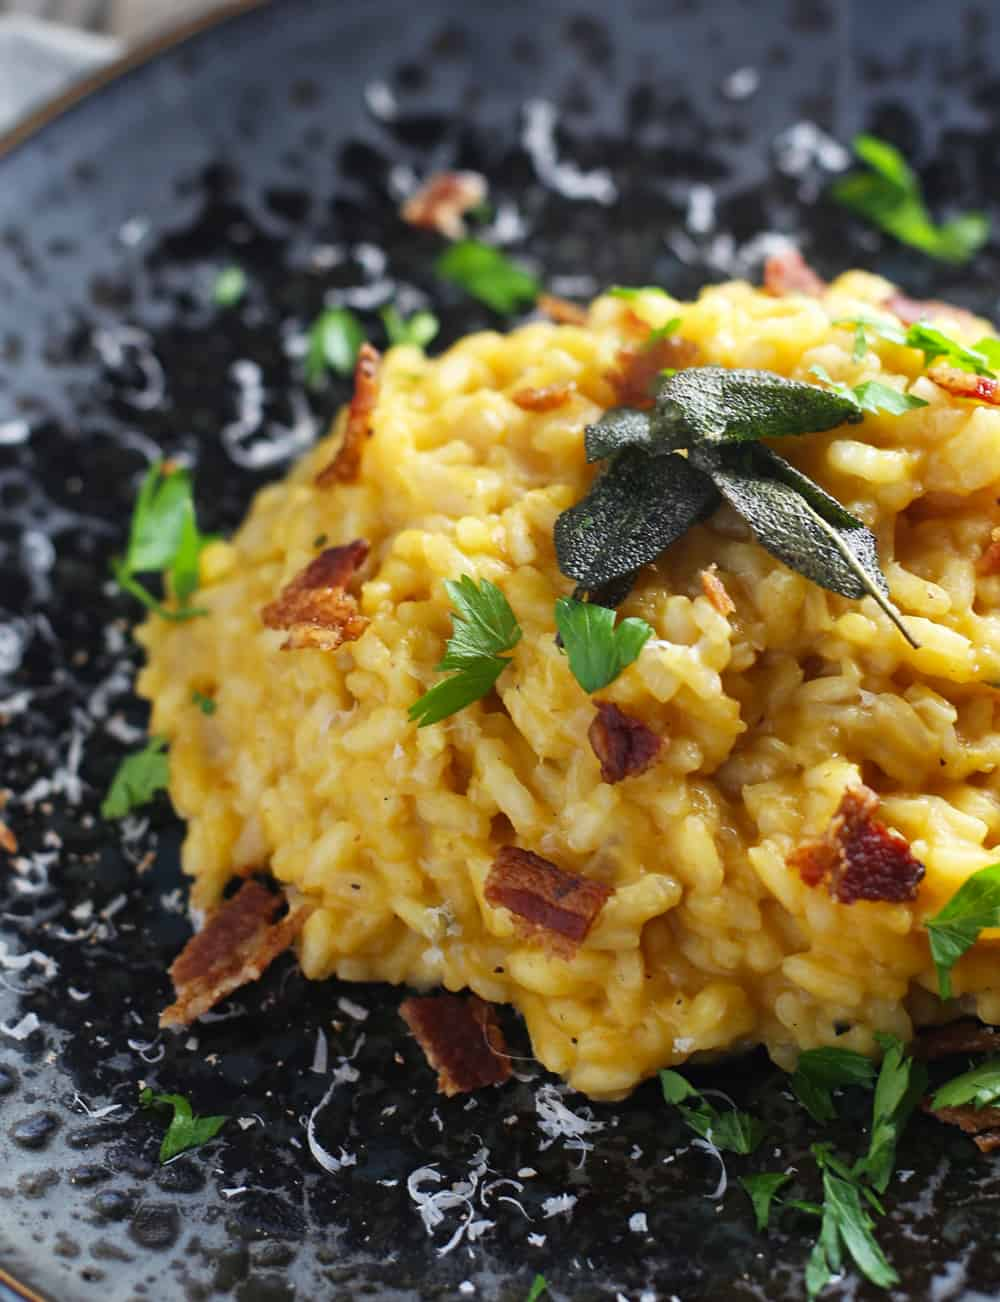 ... risotto dish. Smoke + pumpkin + risotto + wine = pure fall love